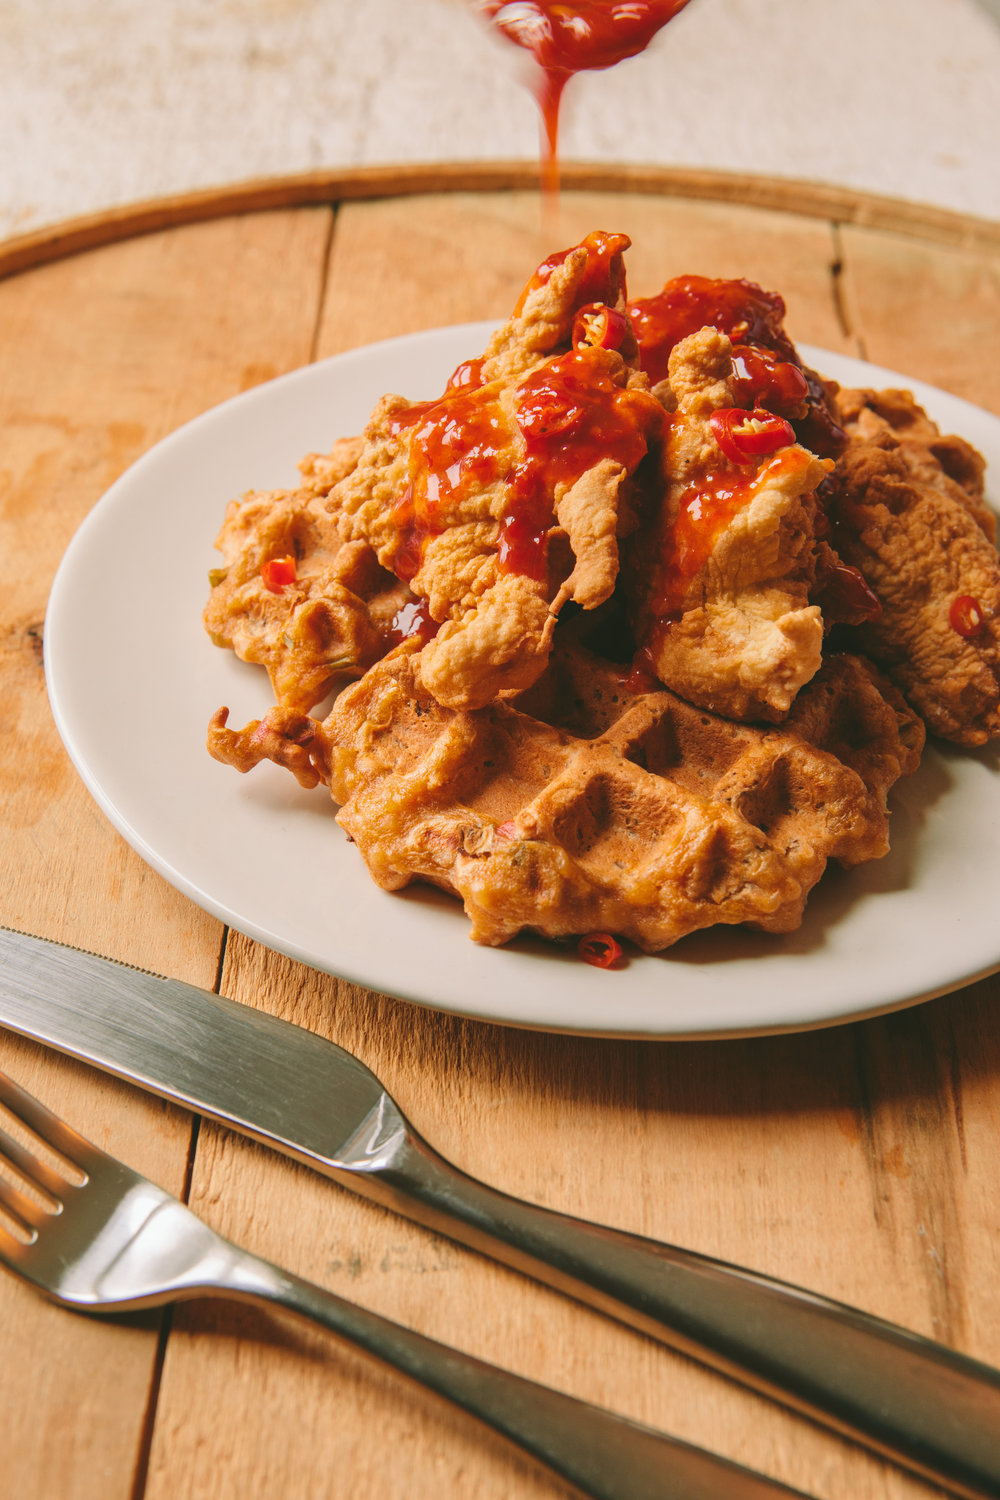 The Art of the Mashup_General Gau Chicken and Pork Fried Waffles_Brian Samuels Photography_January 2017-8883.jpg